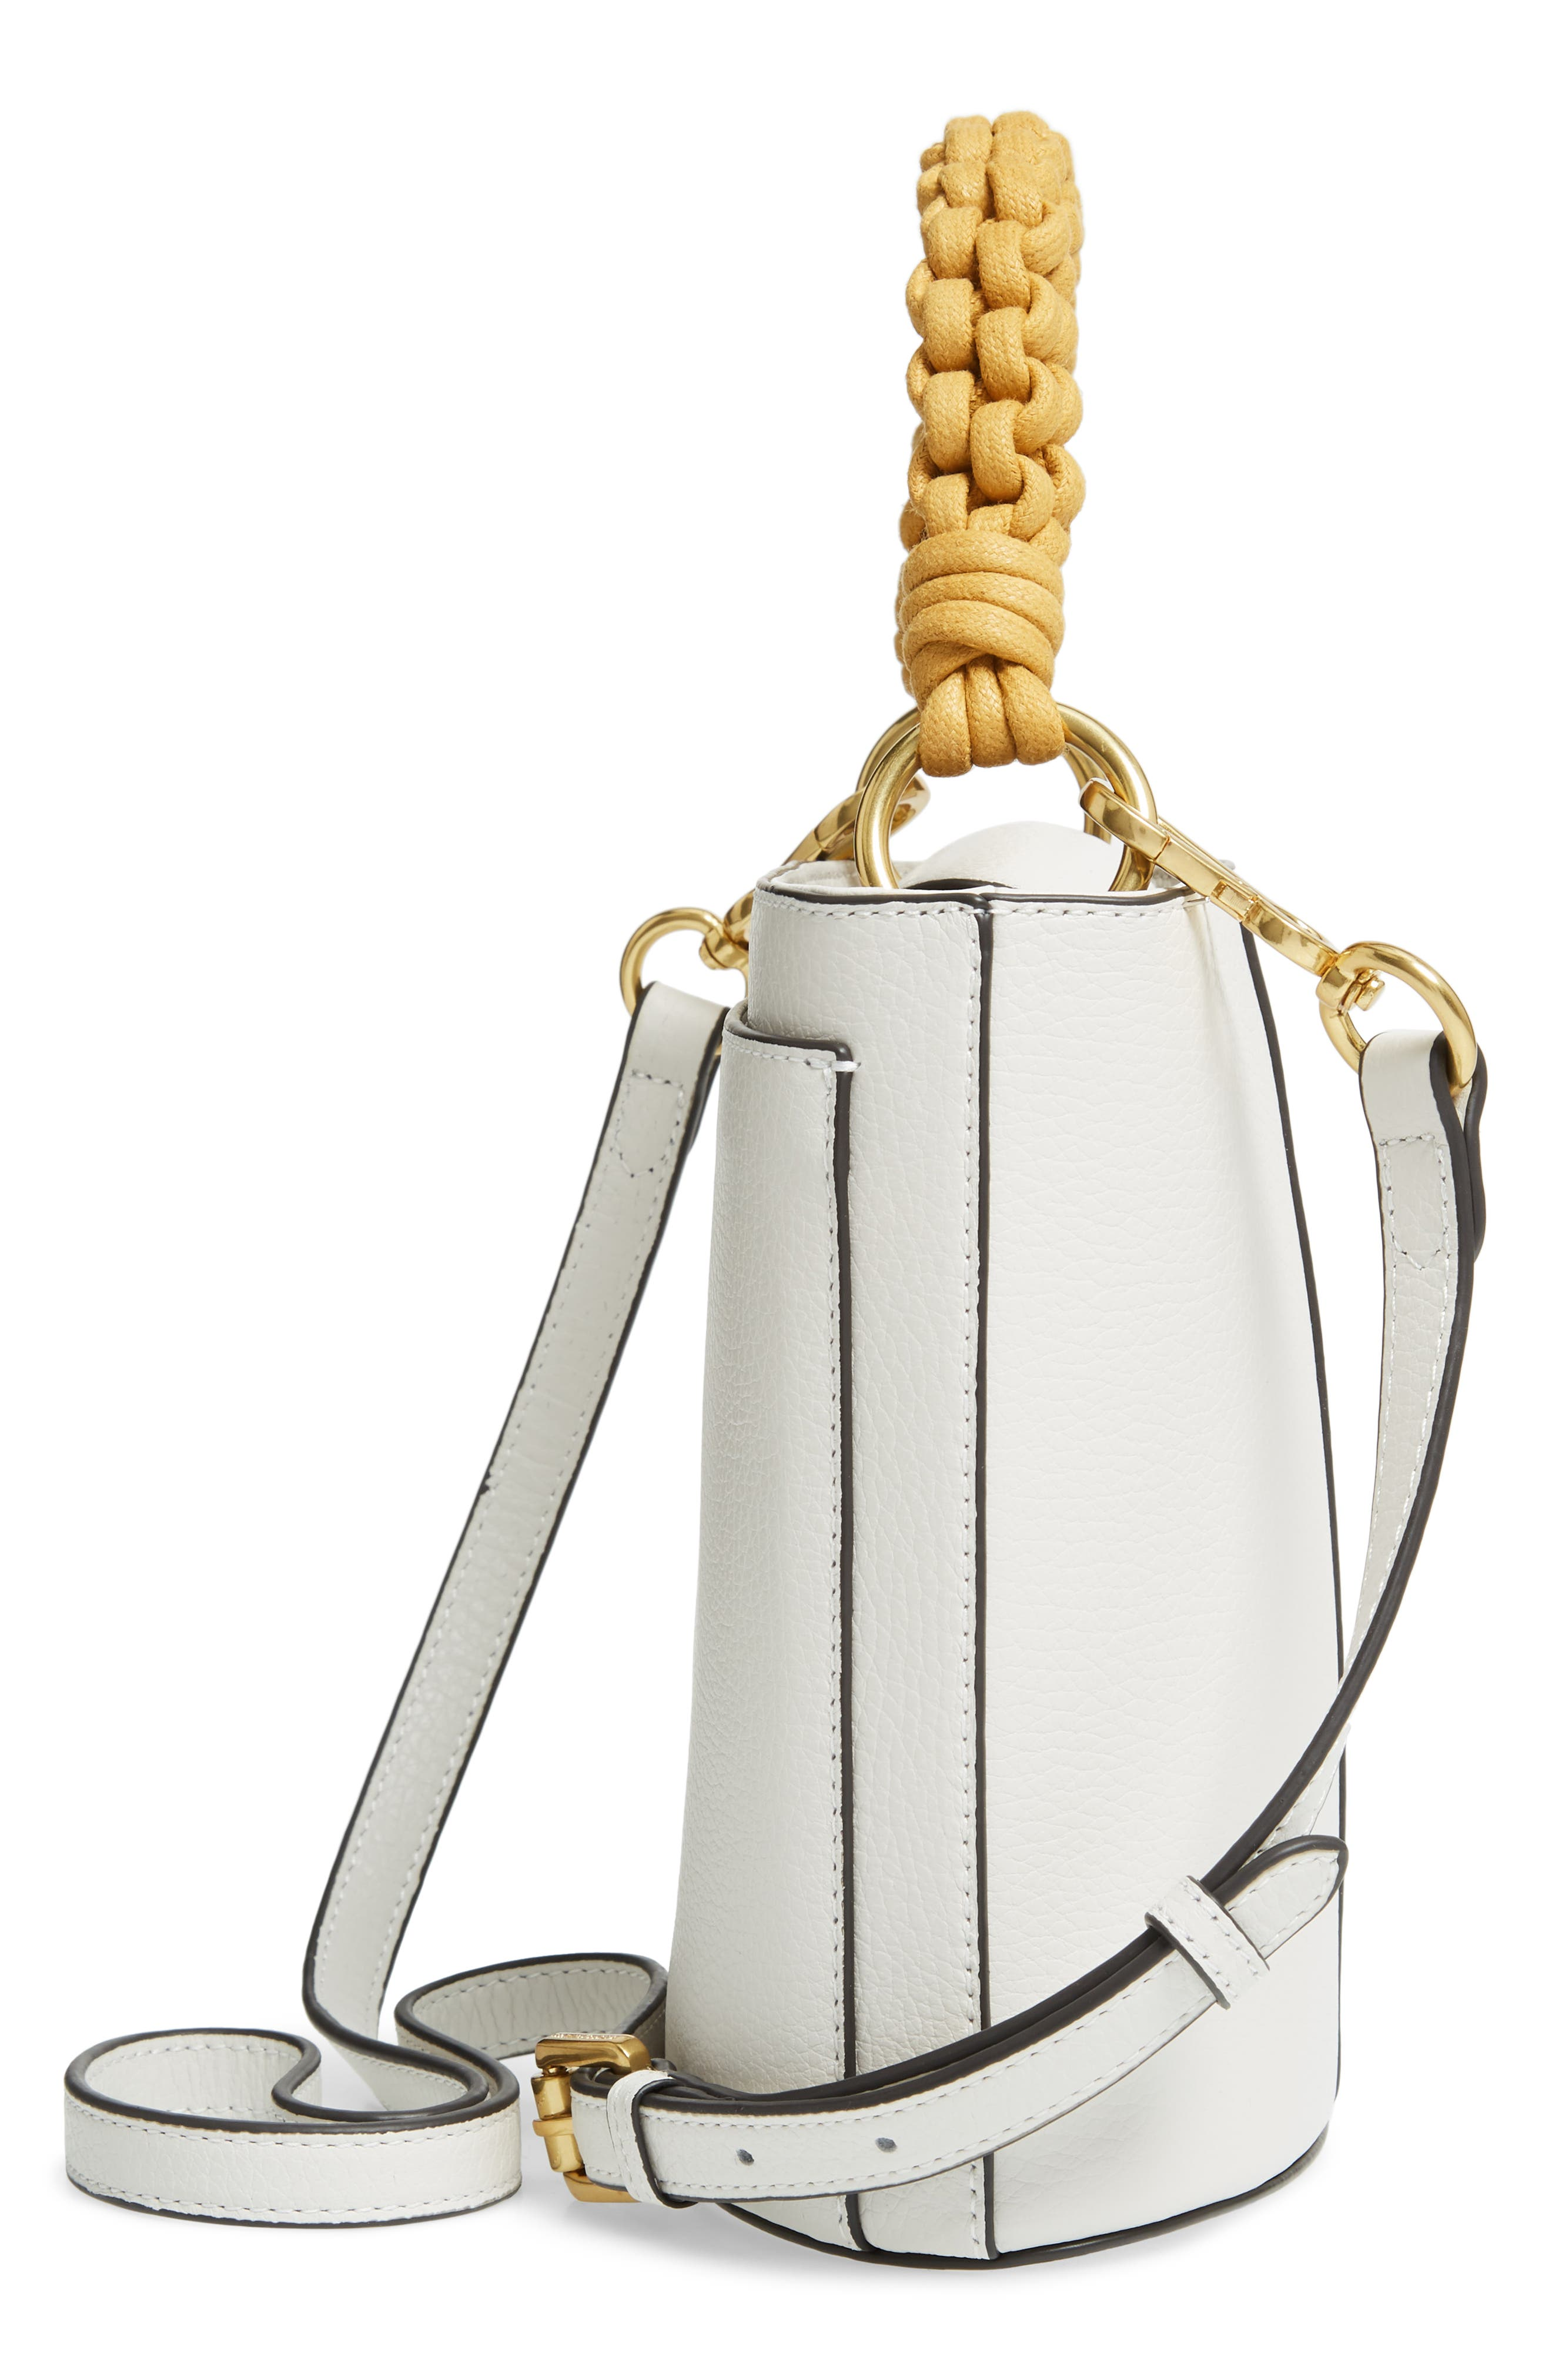 VINCE CAMUTO, Zane Leather Bucket Bag, Alternate thumbnail 5, color, SNOW WHITE